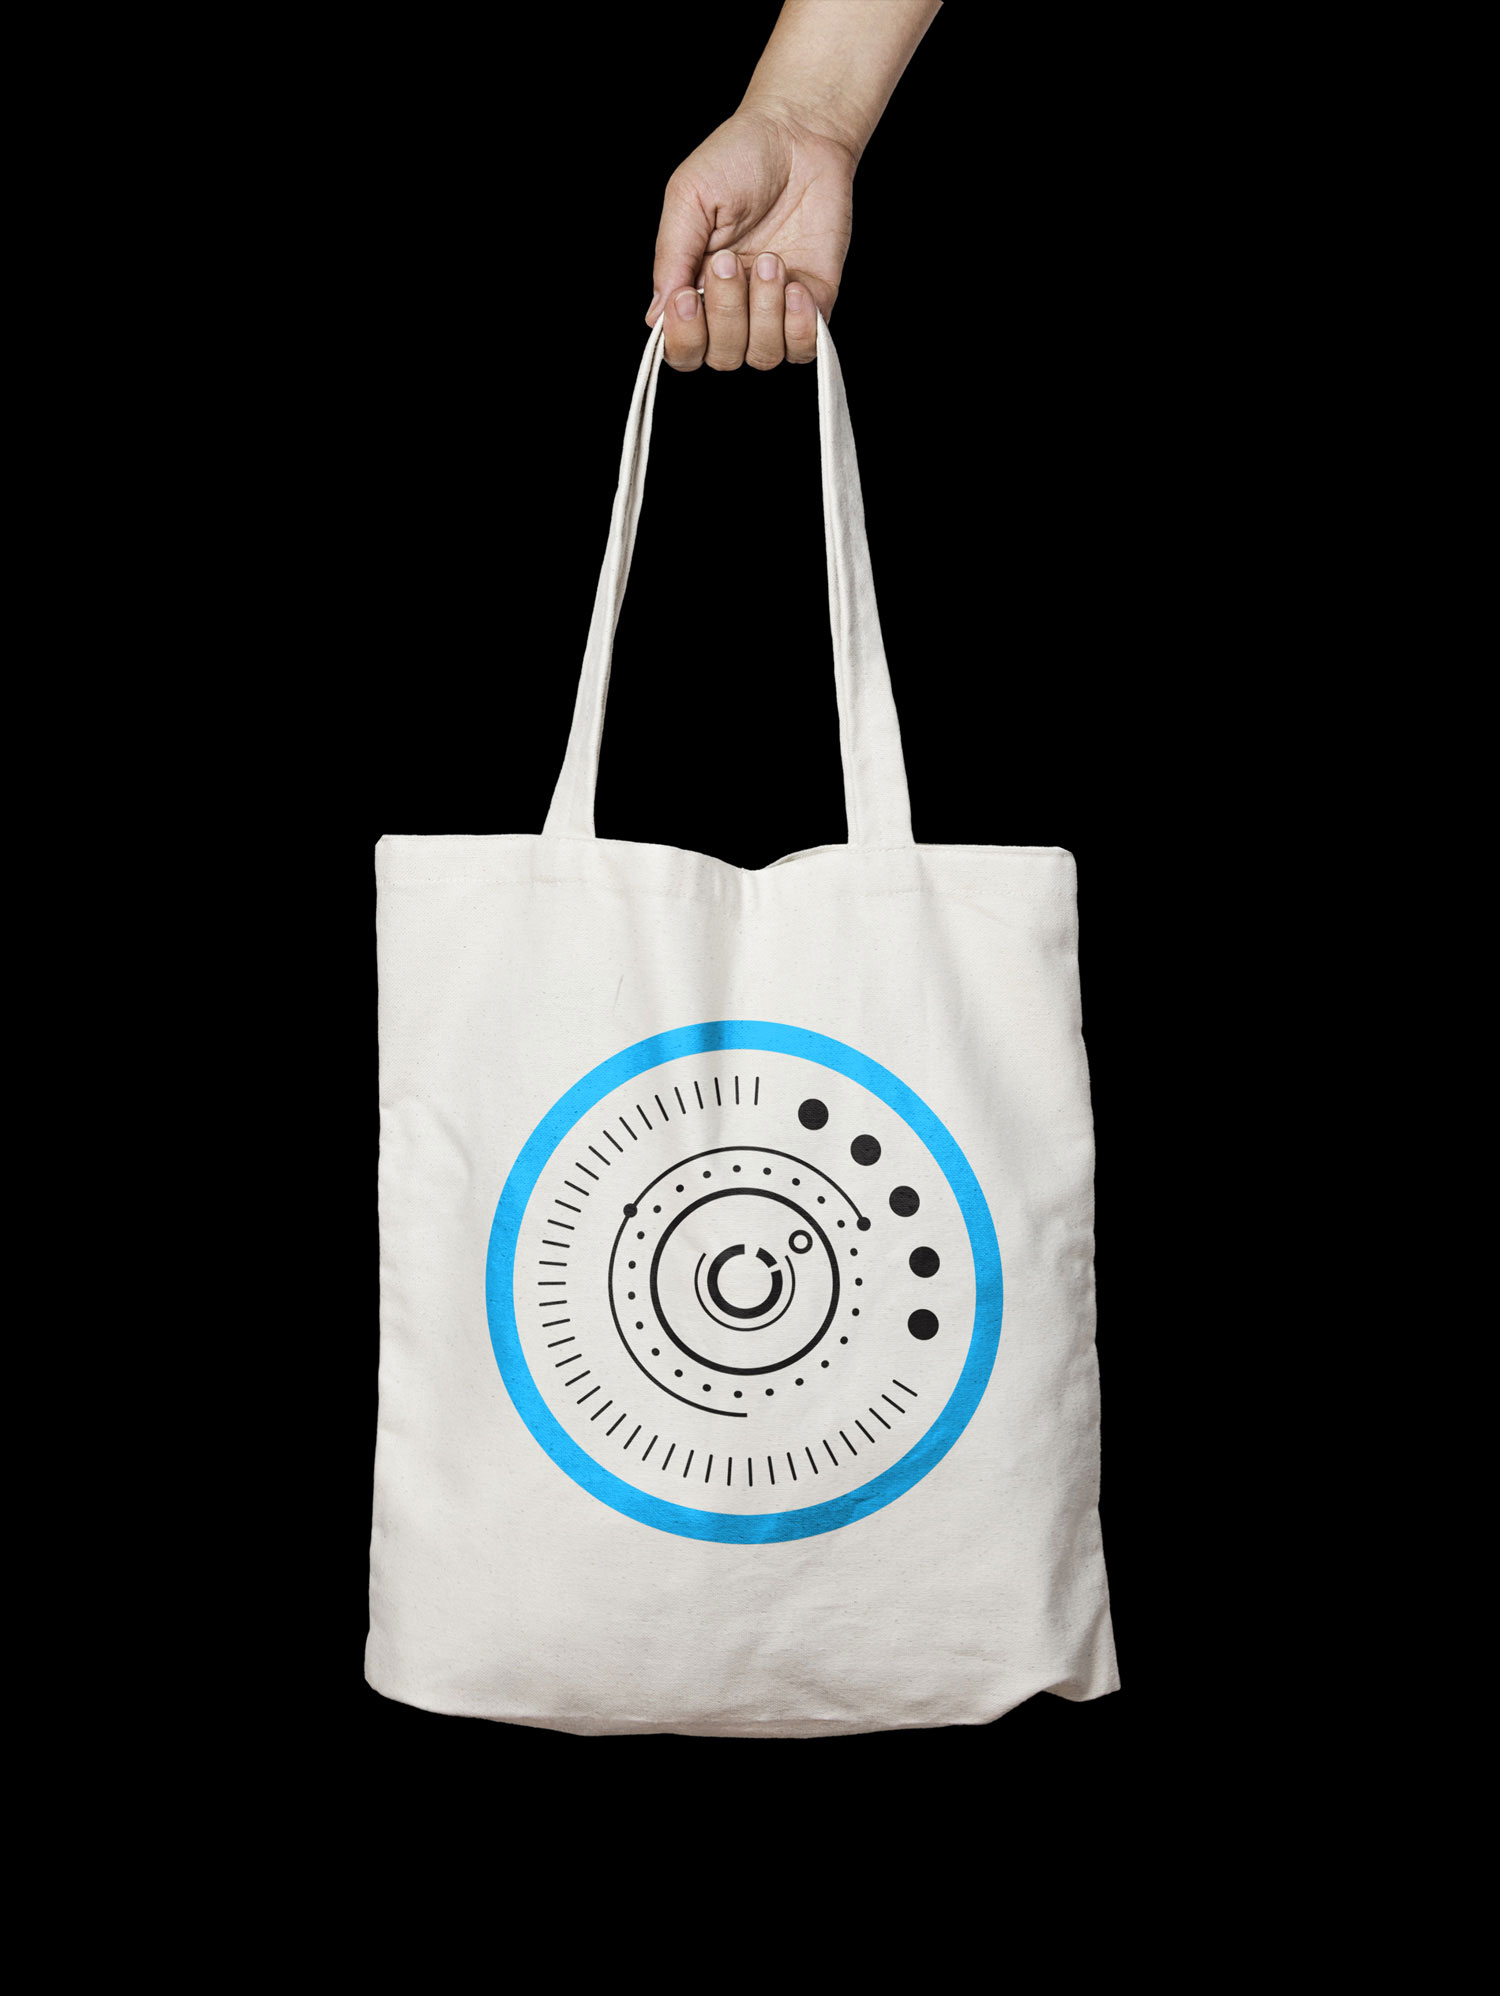 ACT IV Tote Bag Design